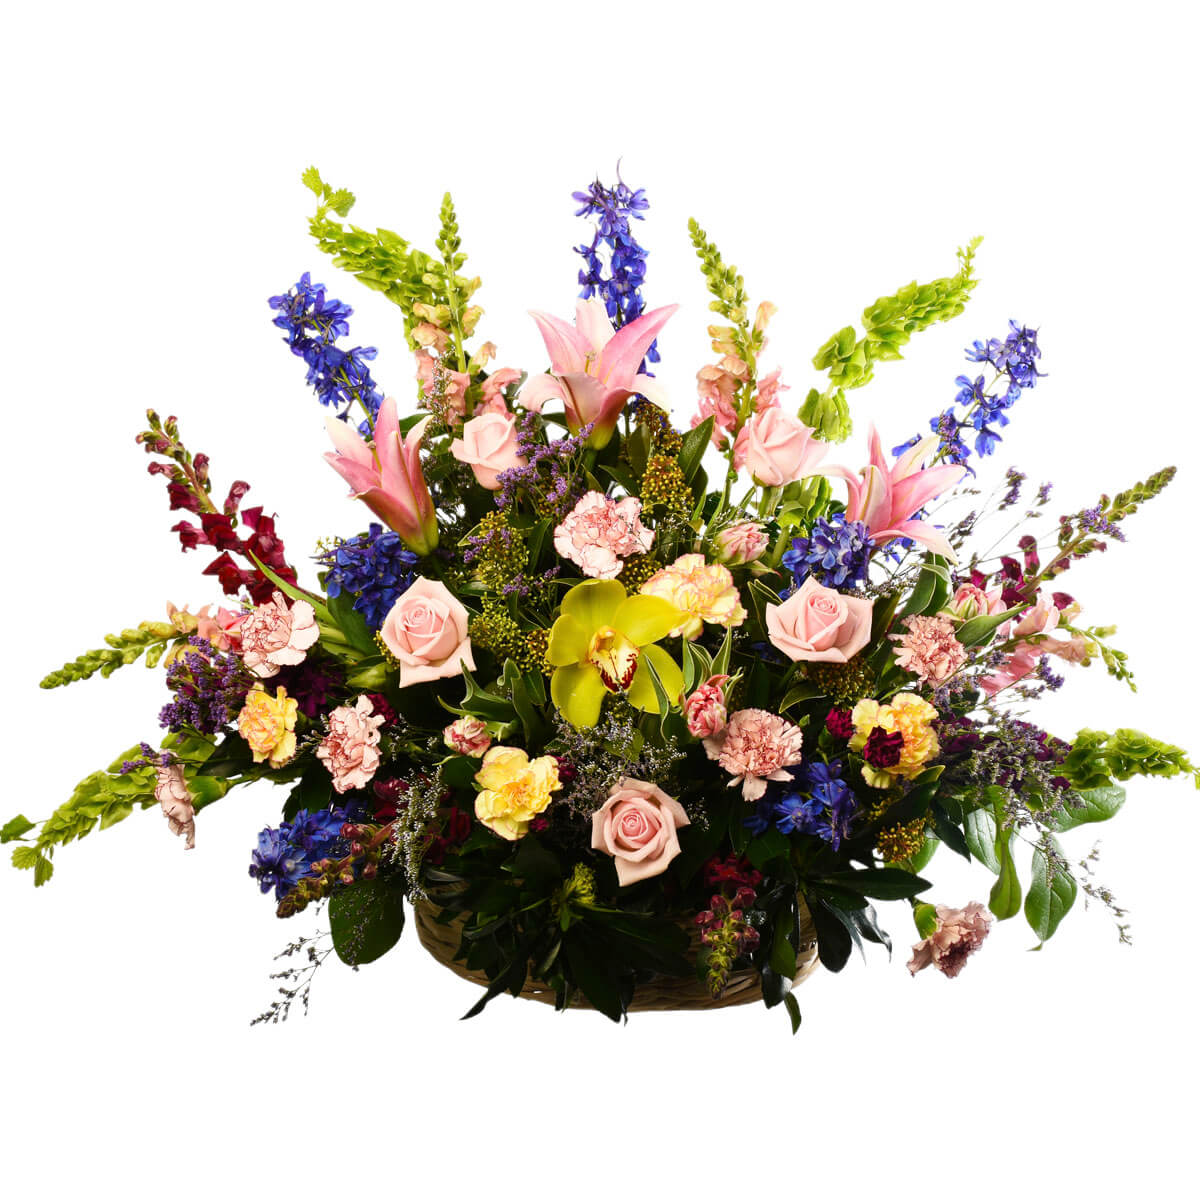 Flower arrangement in a basket design